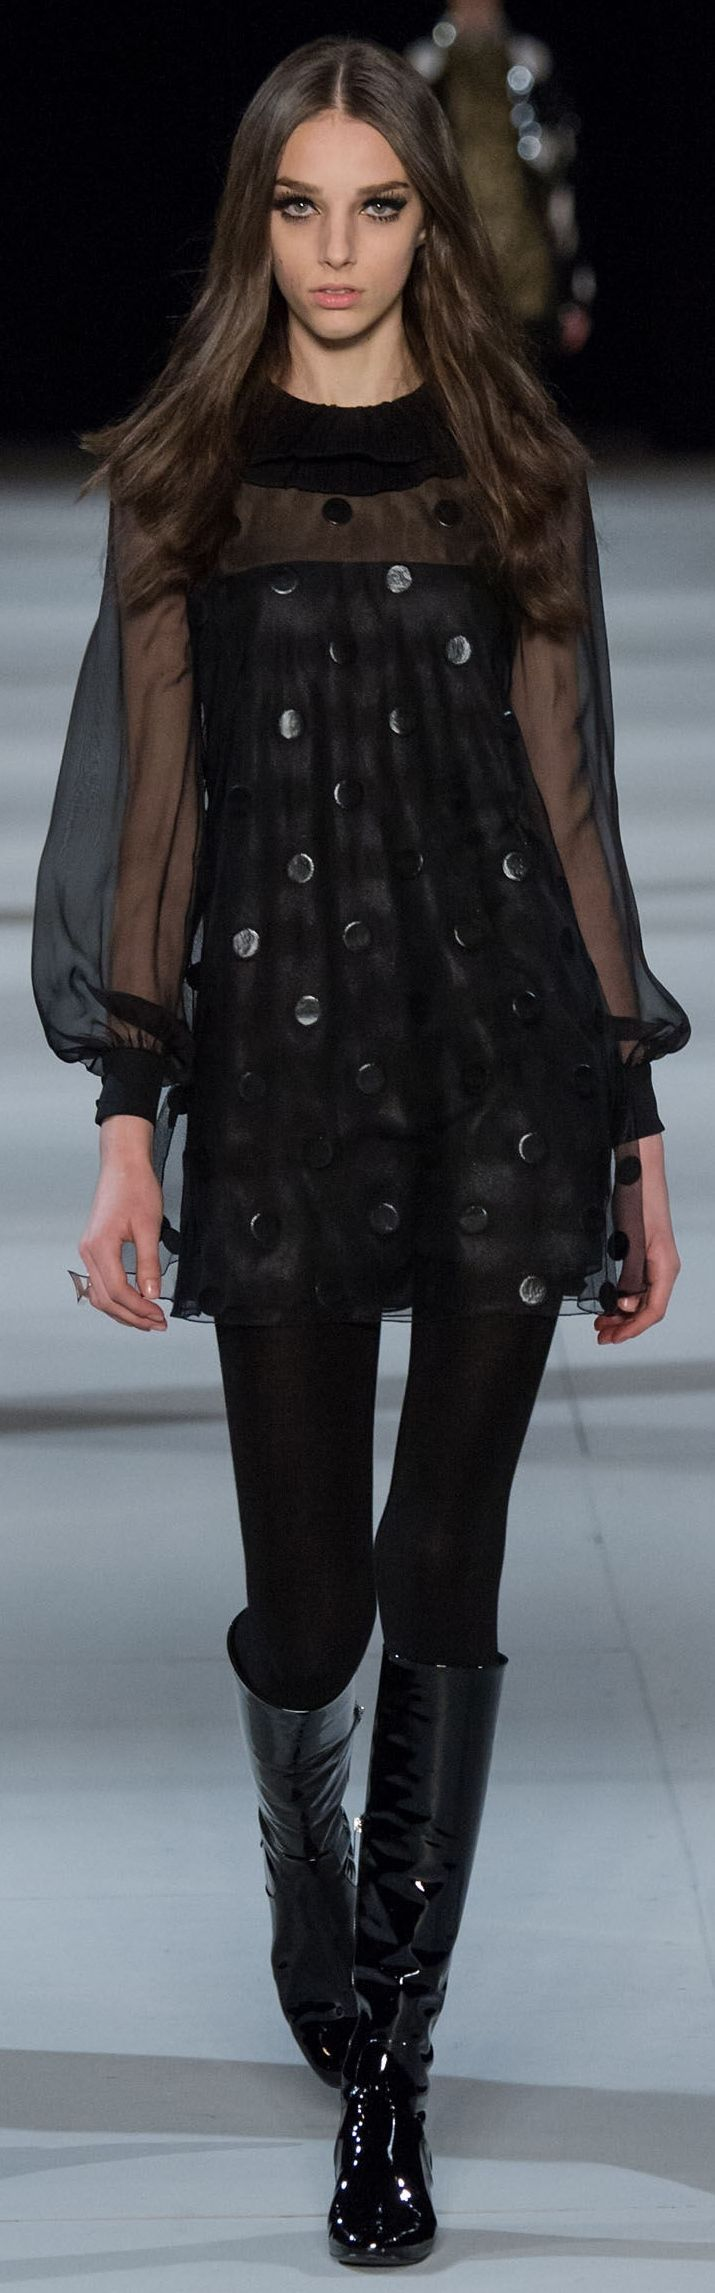 Yves Saint Laurent RTW F/W 2014-2015. Does this woman look like a familiar actress or something...? #saintlaurentdiscount